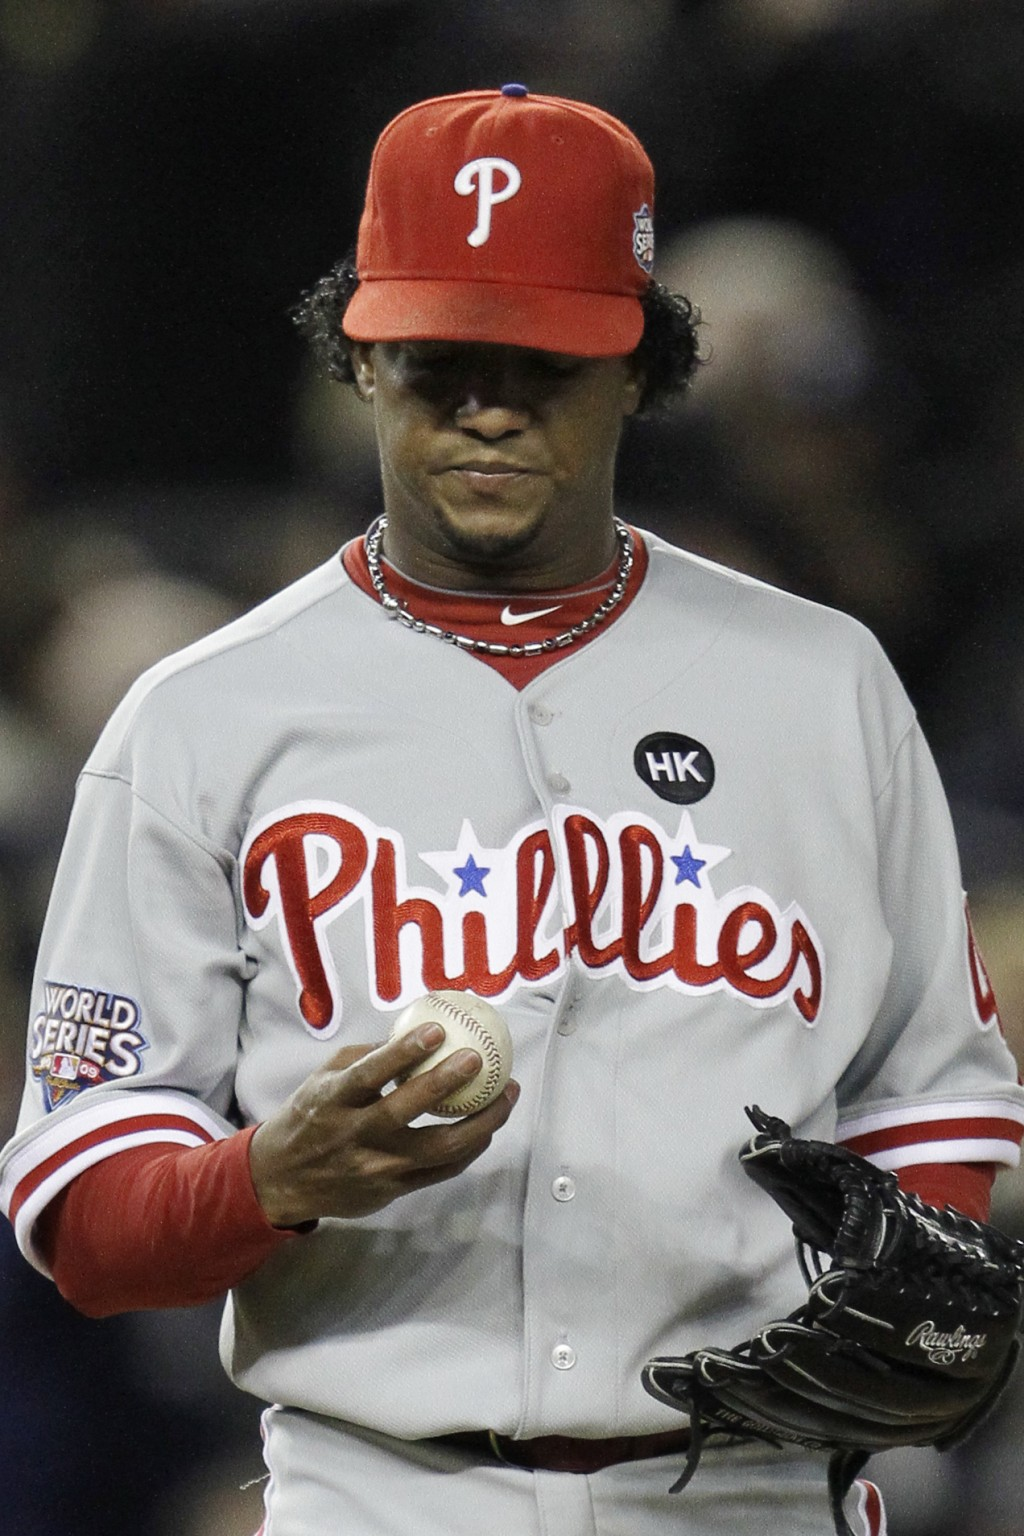 FILE - In this Nov. 4, 2009, file photo, Philadelphia Phillies' Pedro Martinez looks at his ball after giving up a two-run home run to New York Yankee